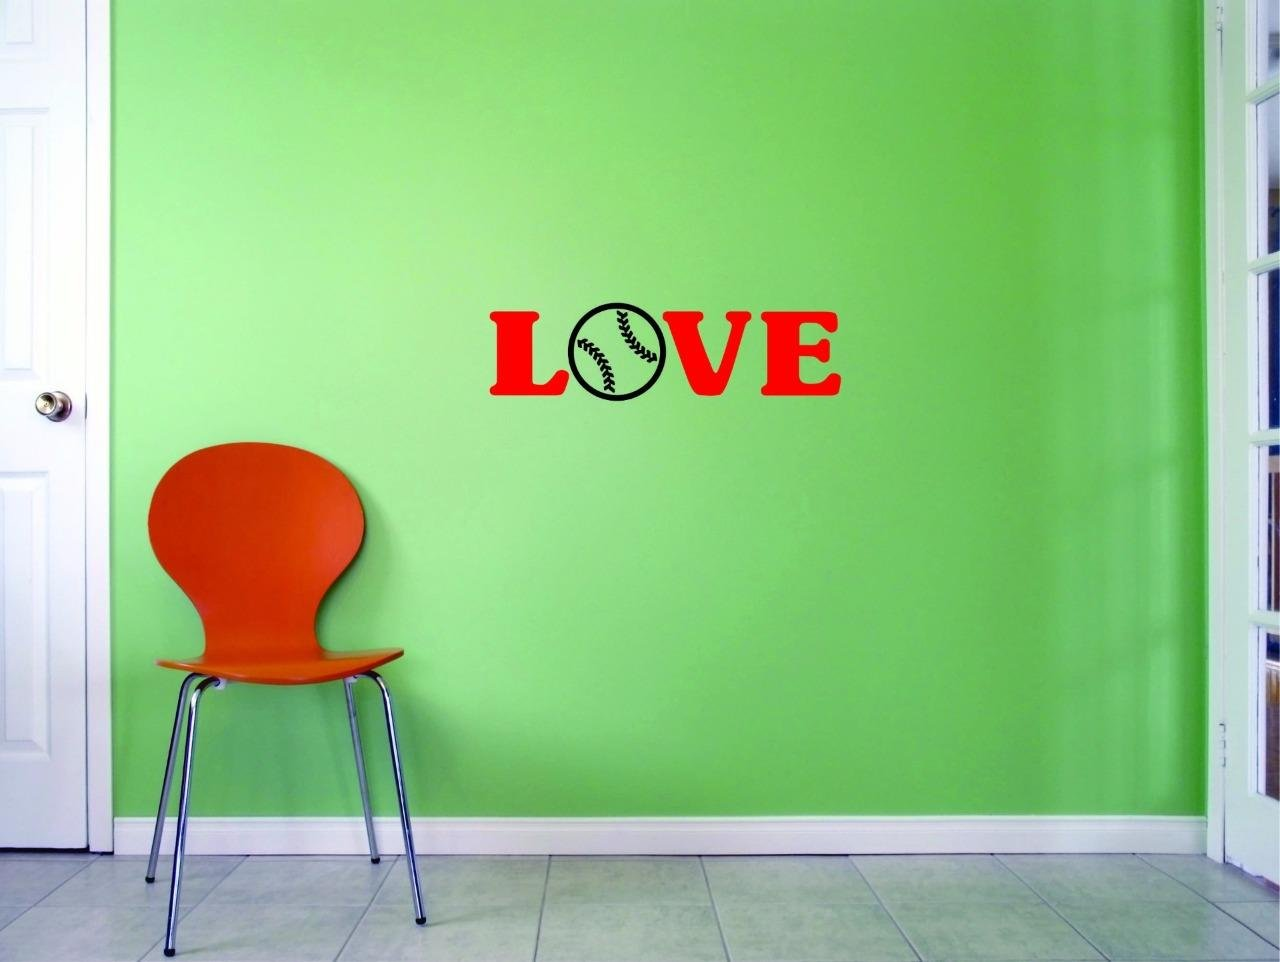 10 Inches X 36 Inches Color Multi 10 x 36 Design with Vinyl US V JER 2647 3 Top Selling Decals Love Baseball Wall Art Size